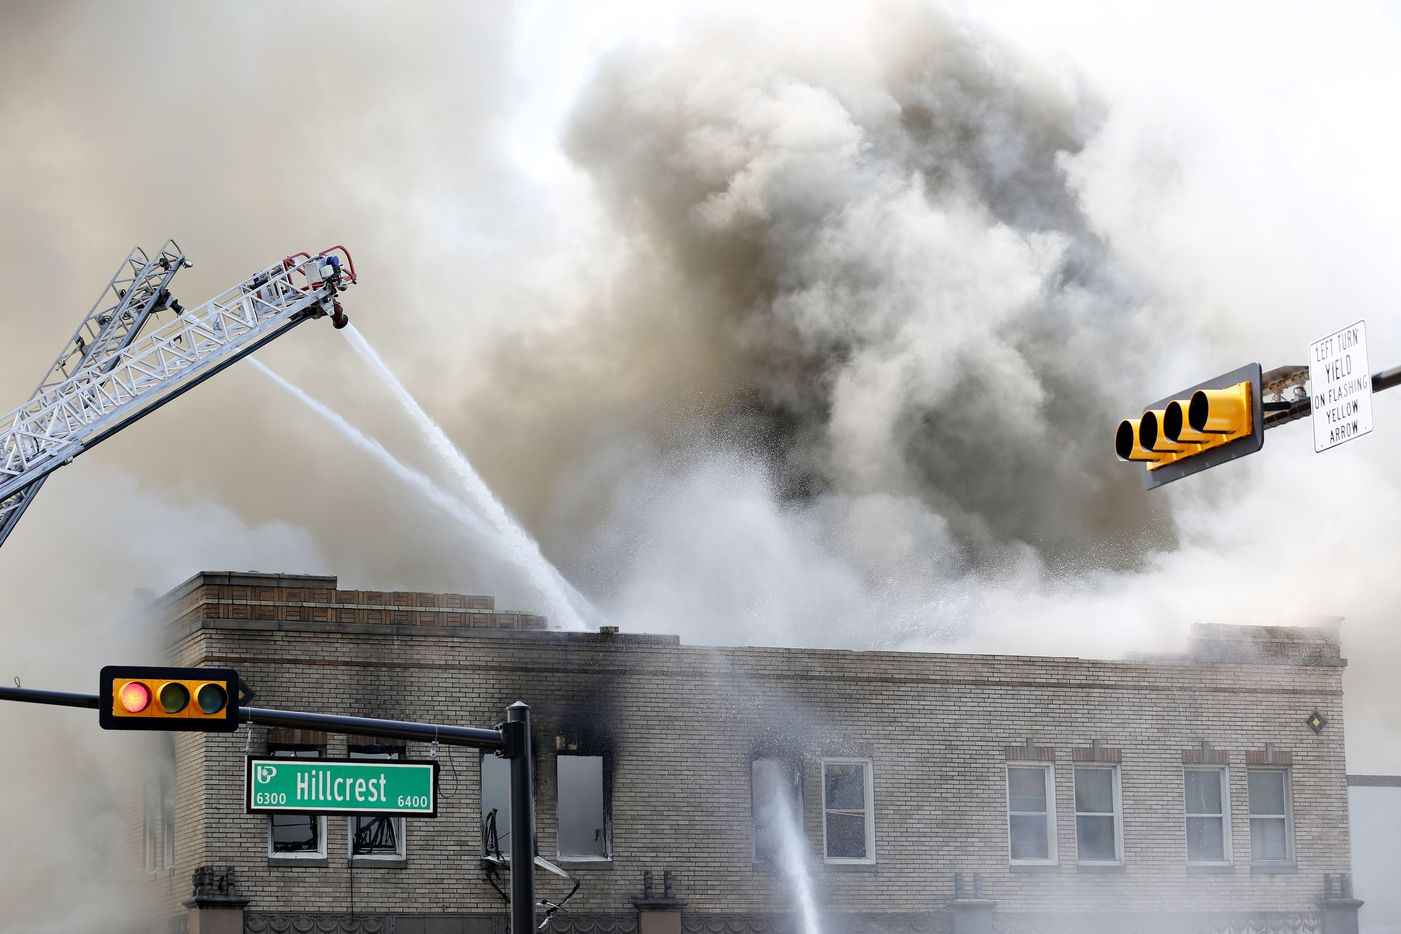 Firefighters respond to a fire at Goff's on Hillcrest Avenue in Dallas Friday August 12, 2016. (Andy Jacobsohn/The Dallas Morning News)